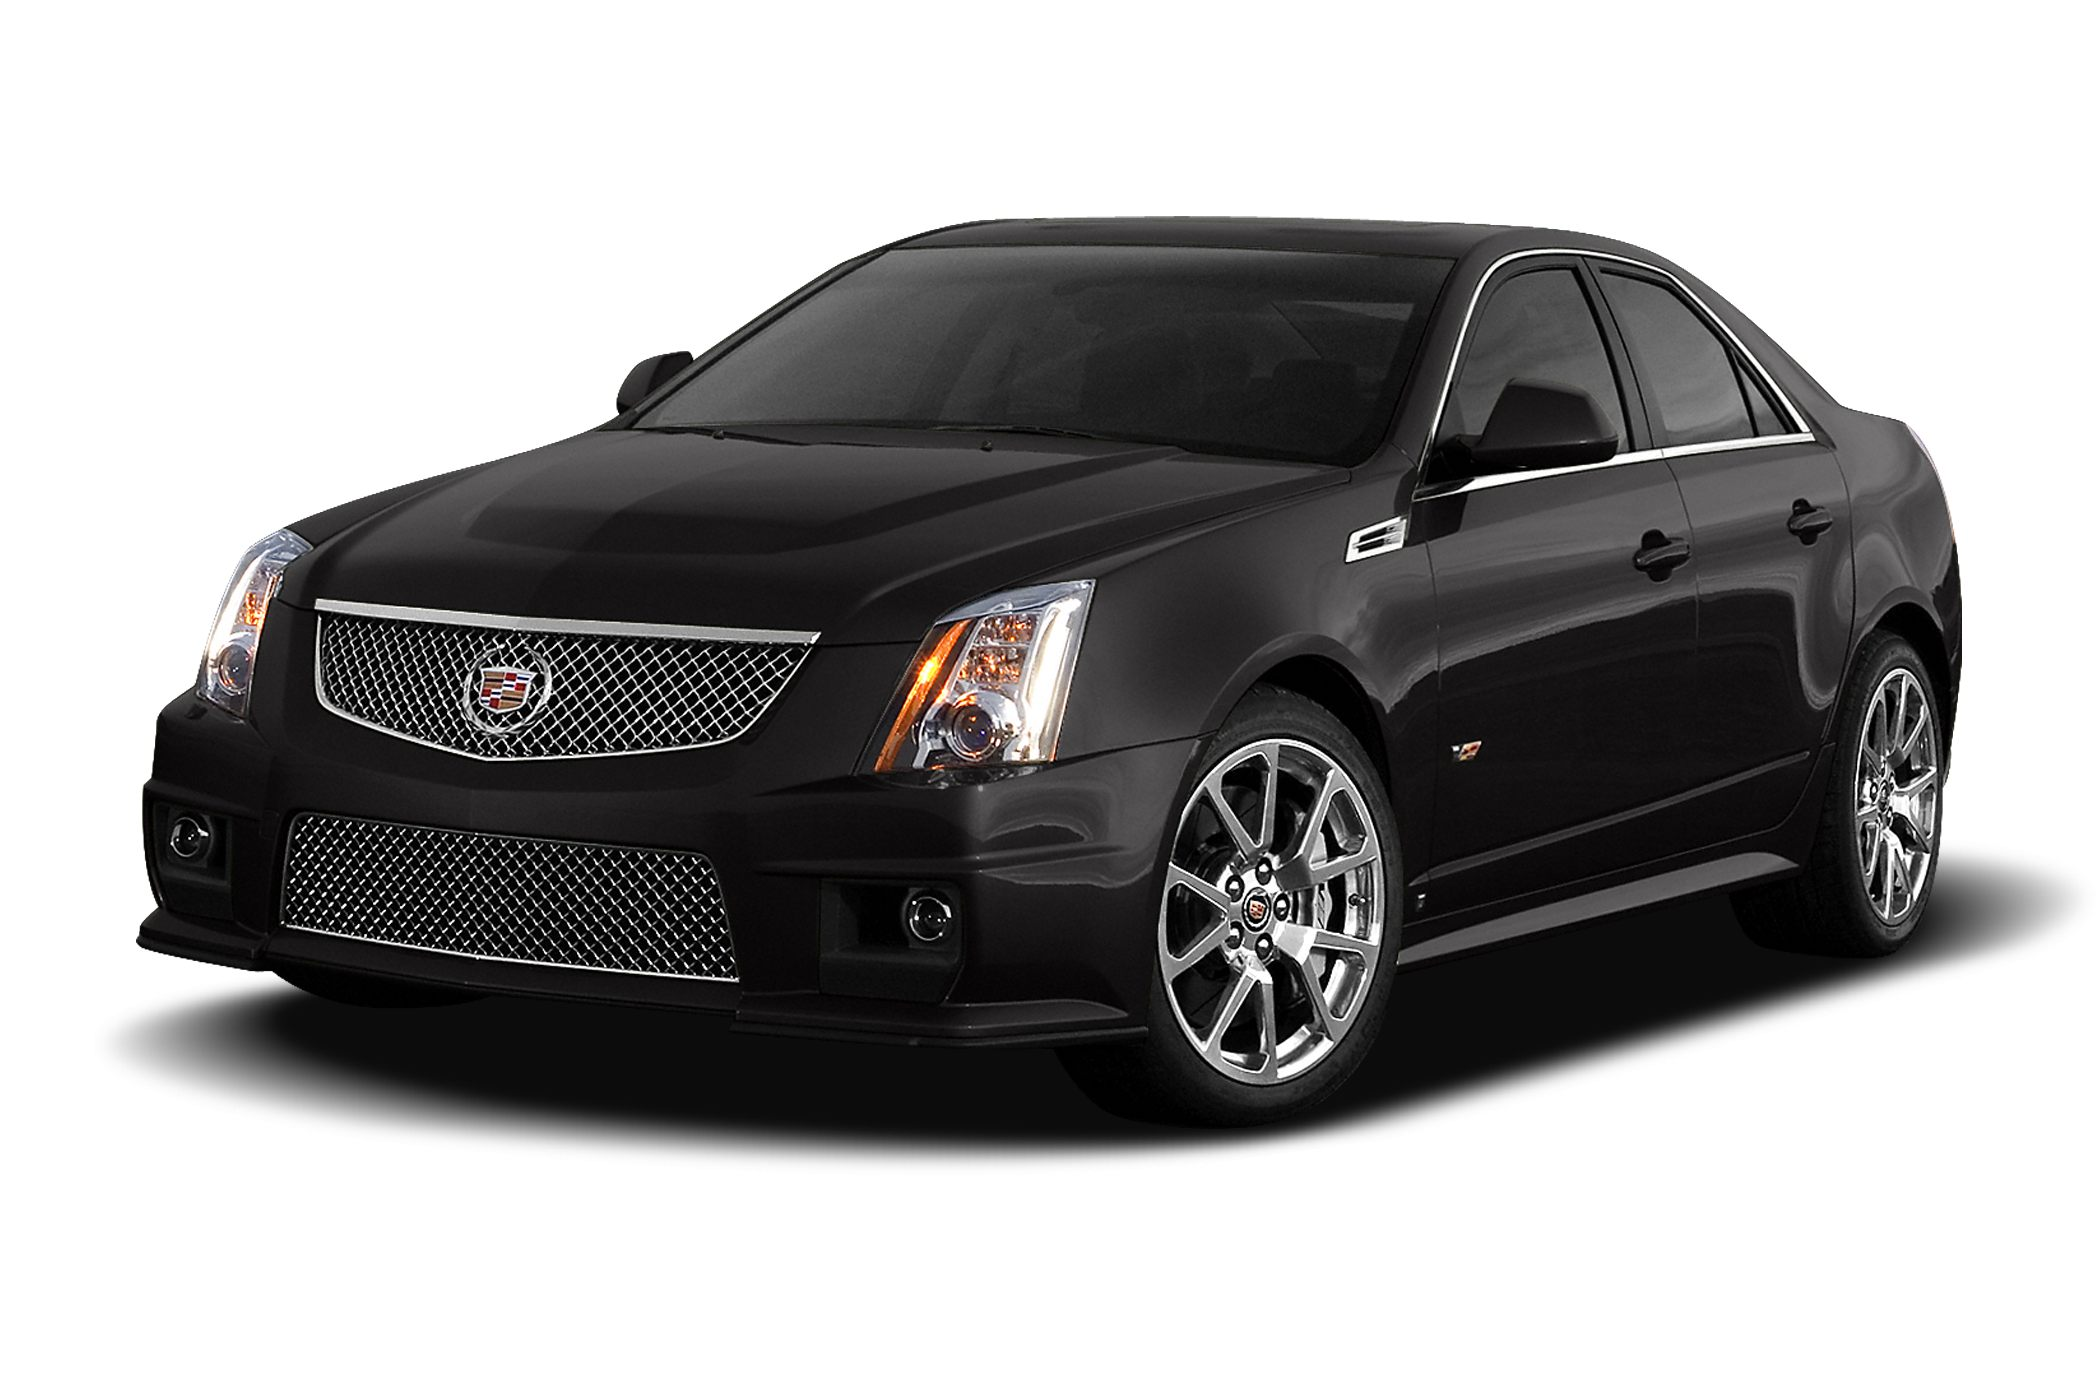 2010 Cadillac CTS V Specs and Prices